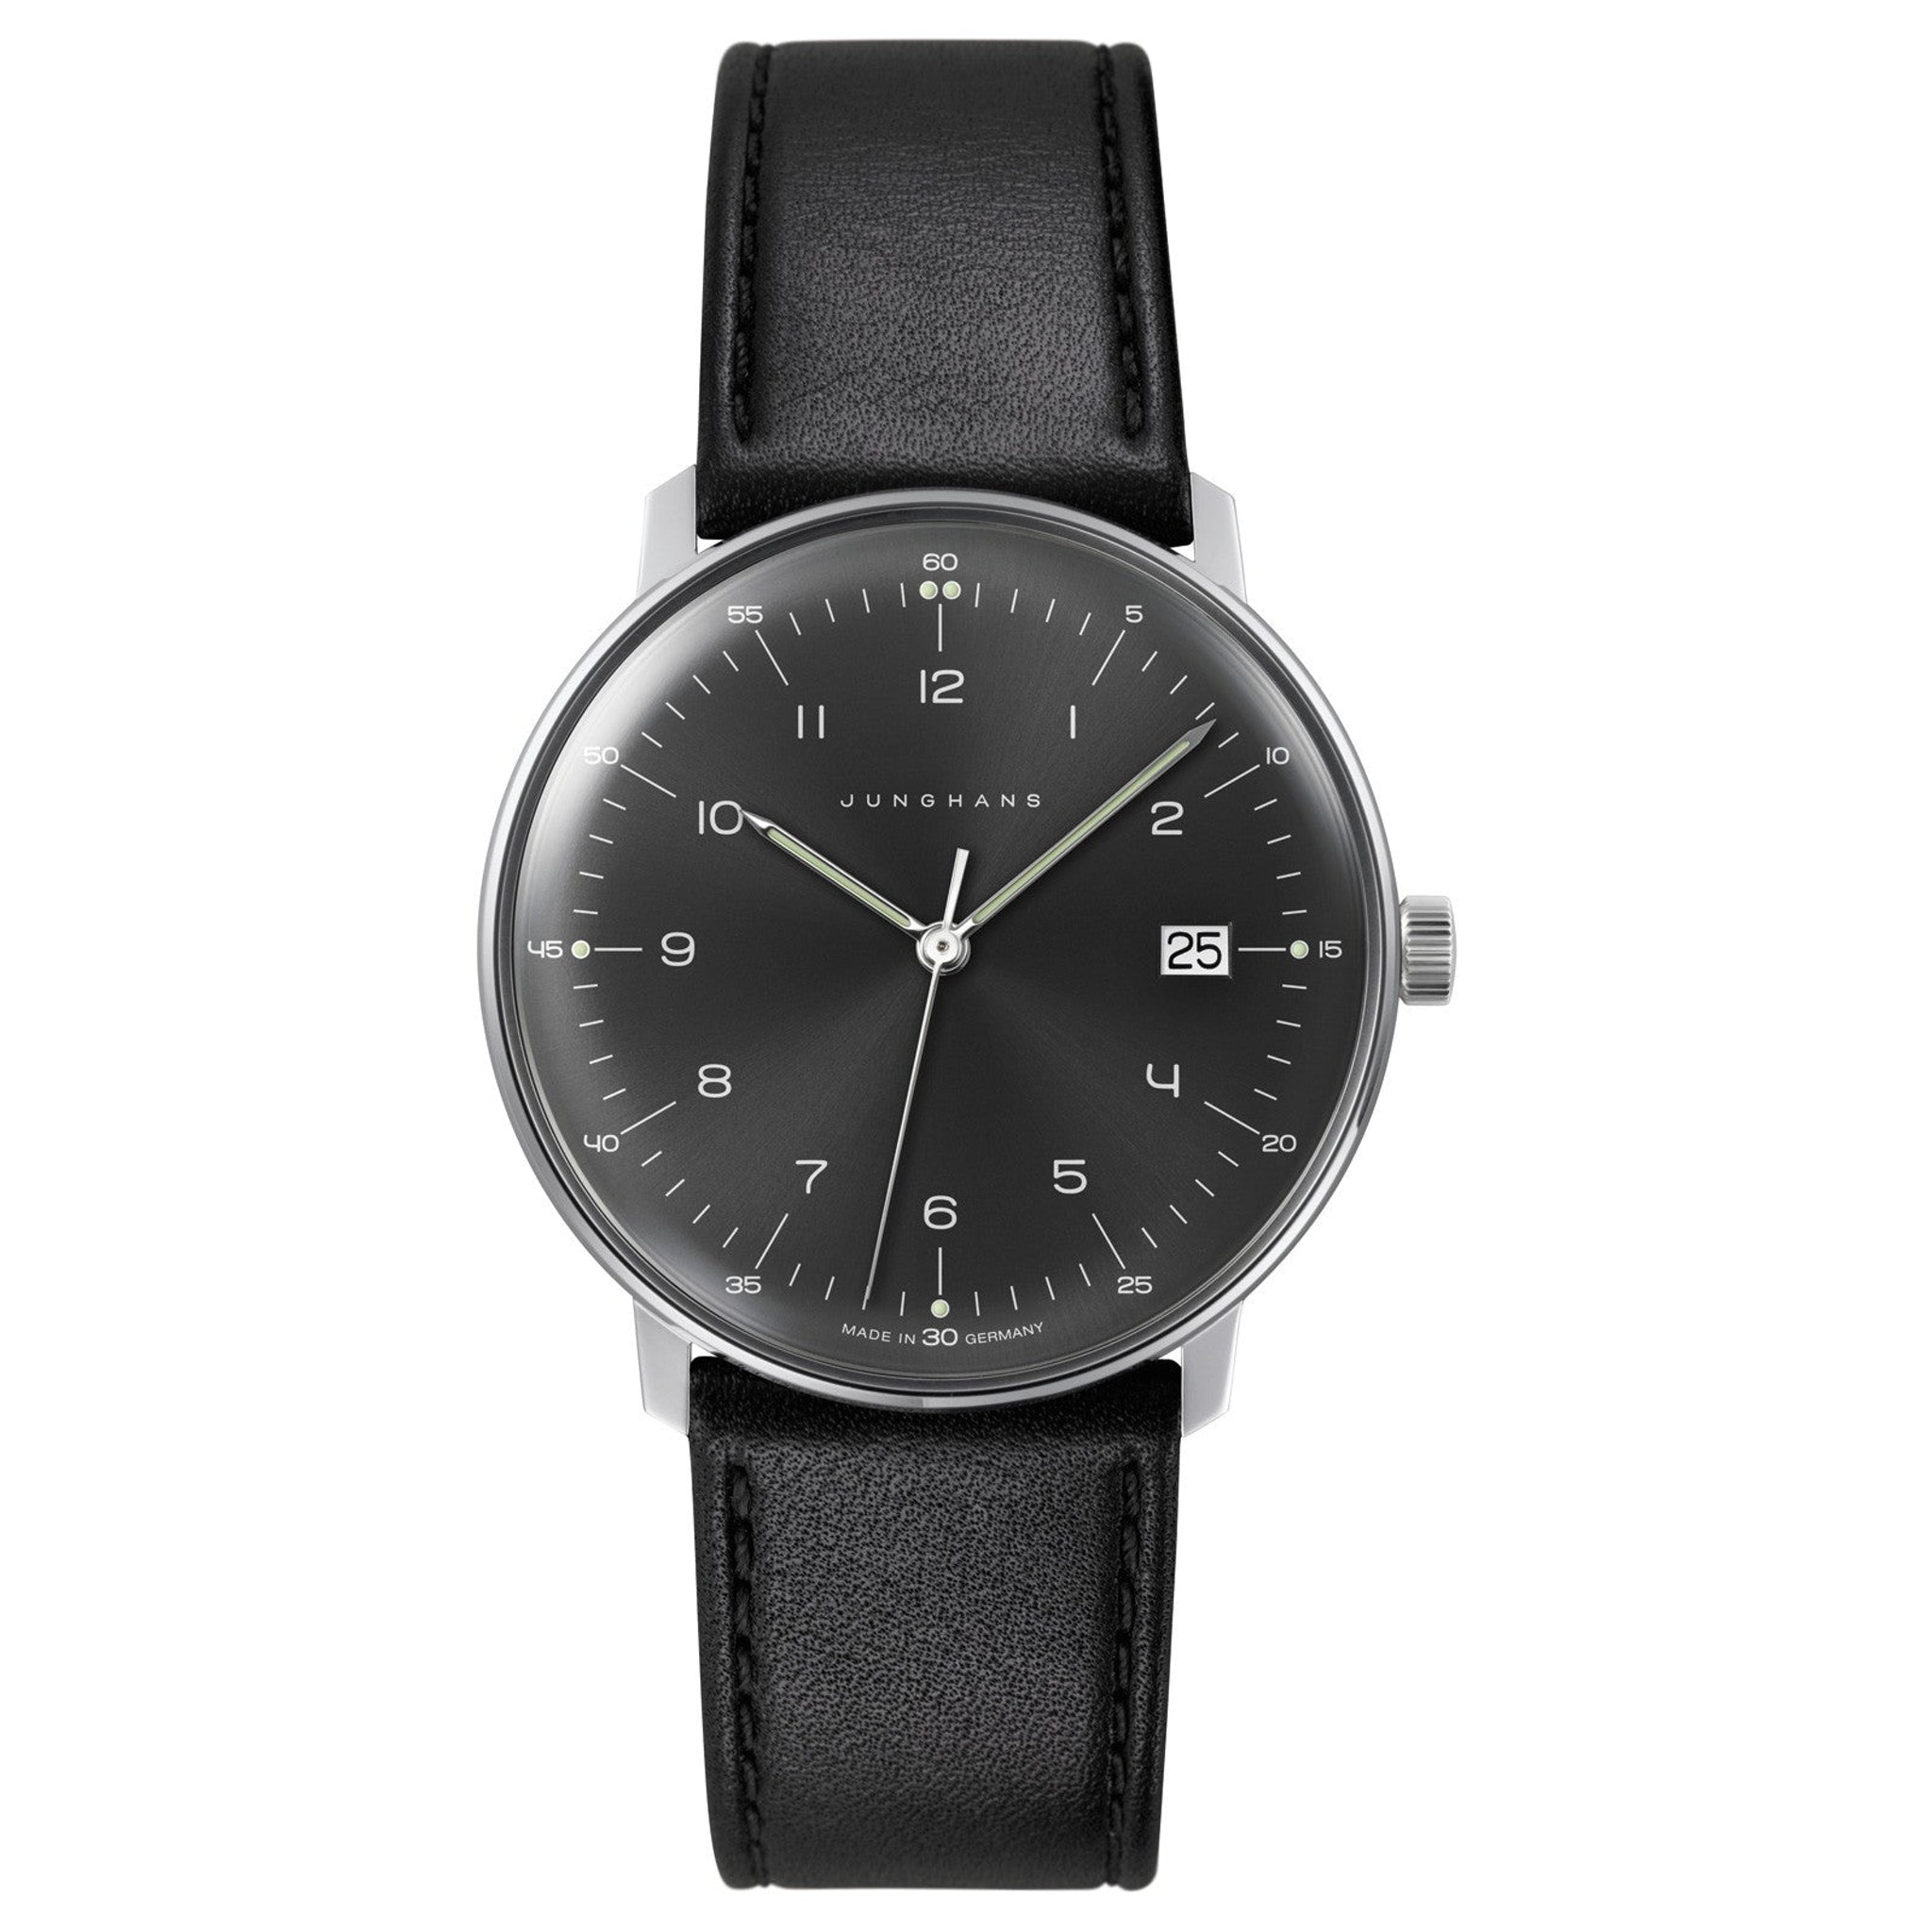 Max Bill 041/4462.00 Quartz watch by Junghans